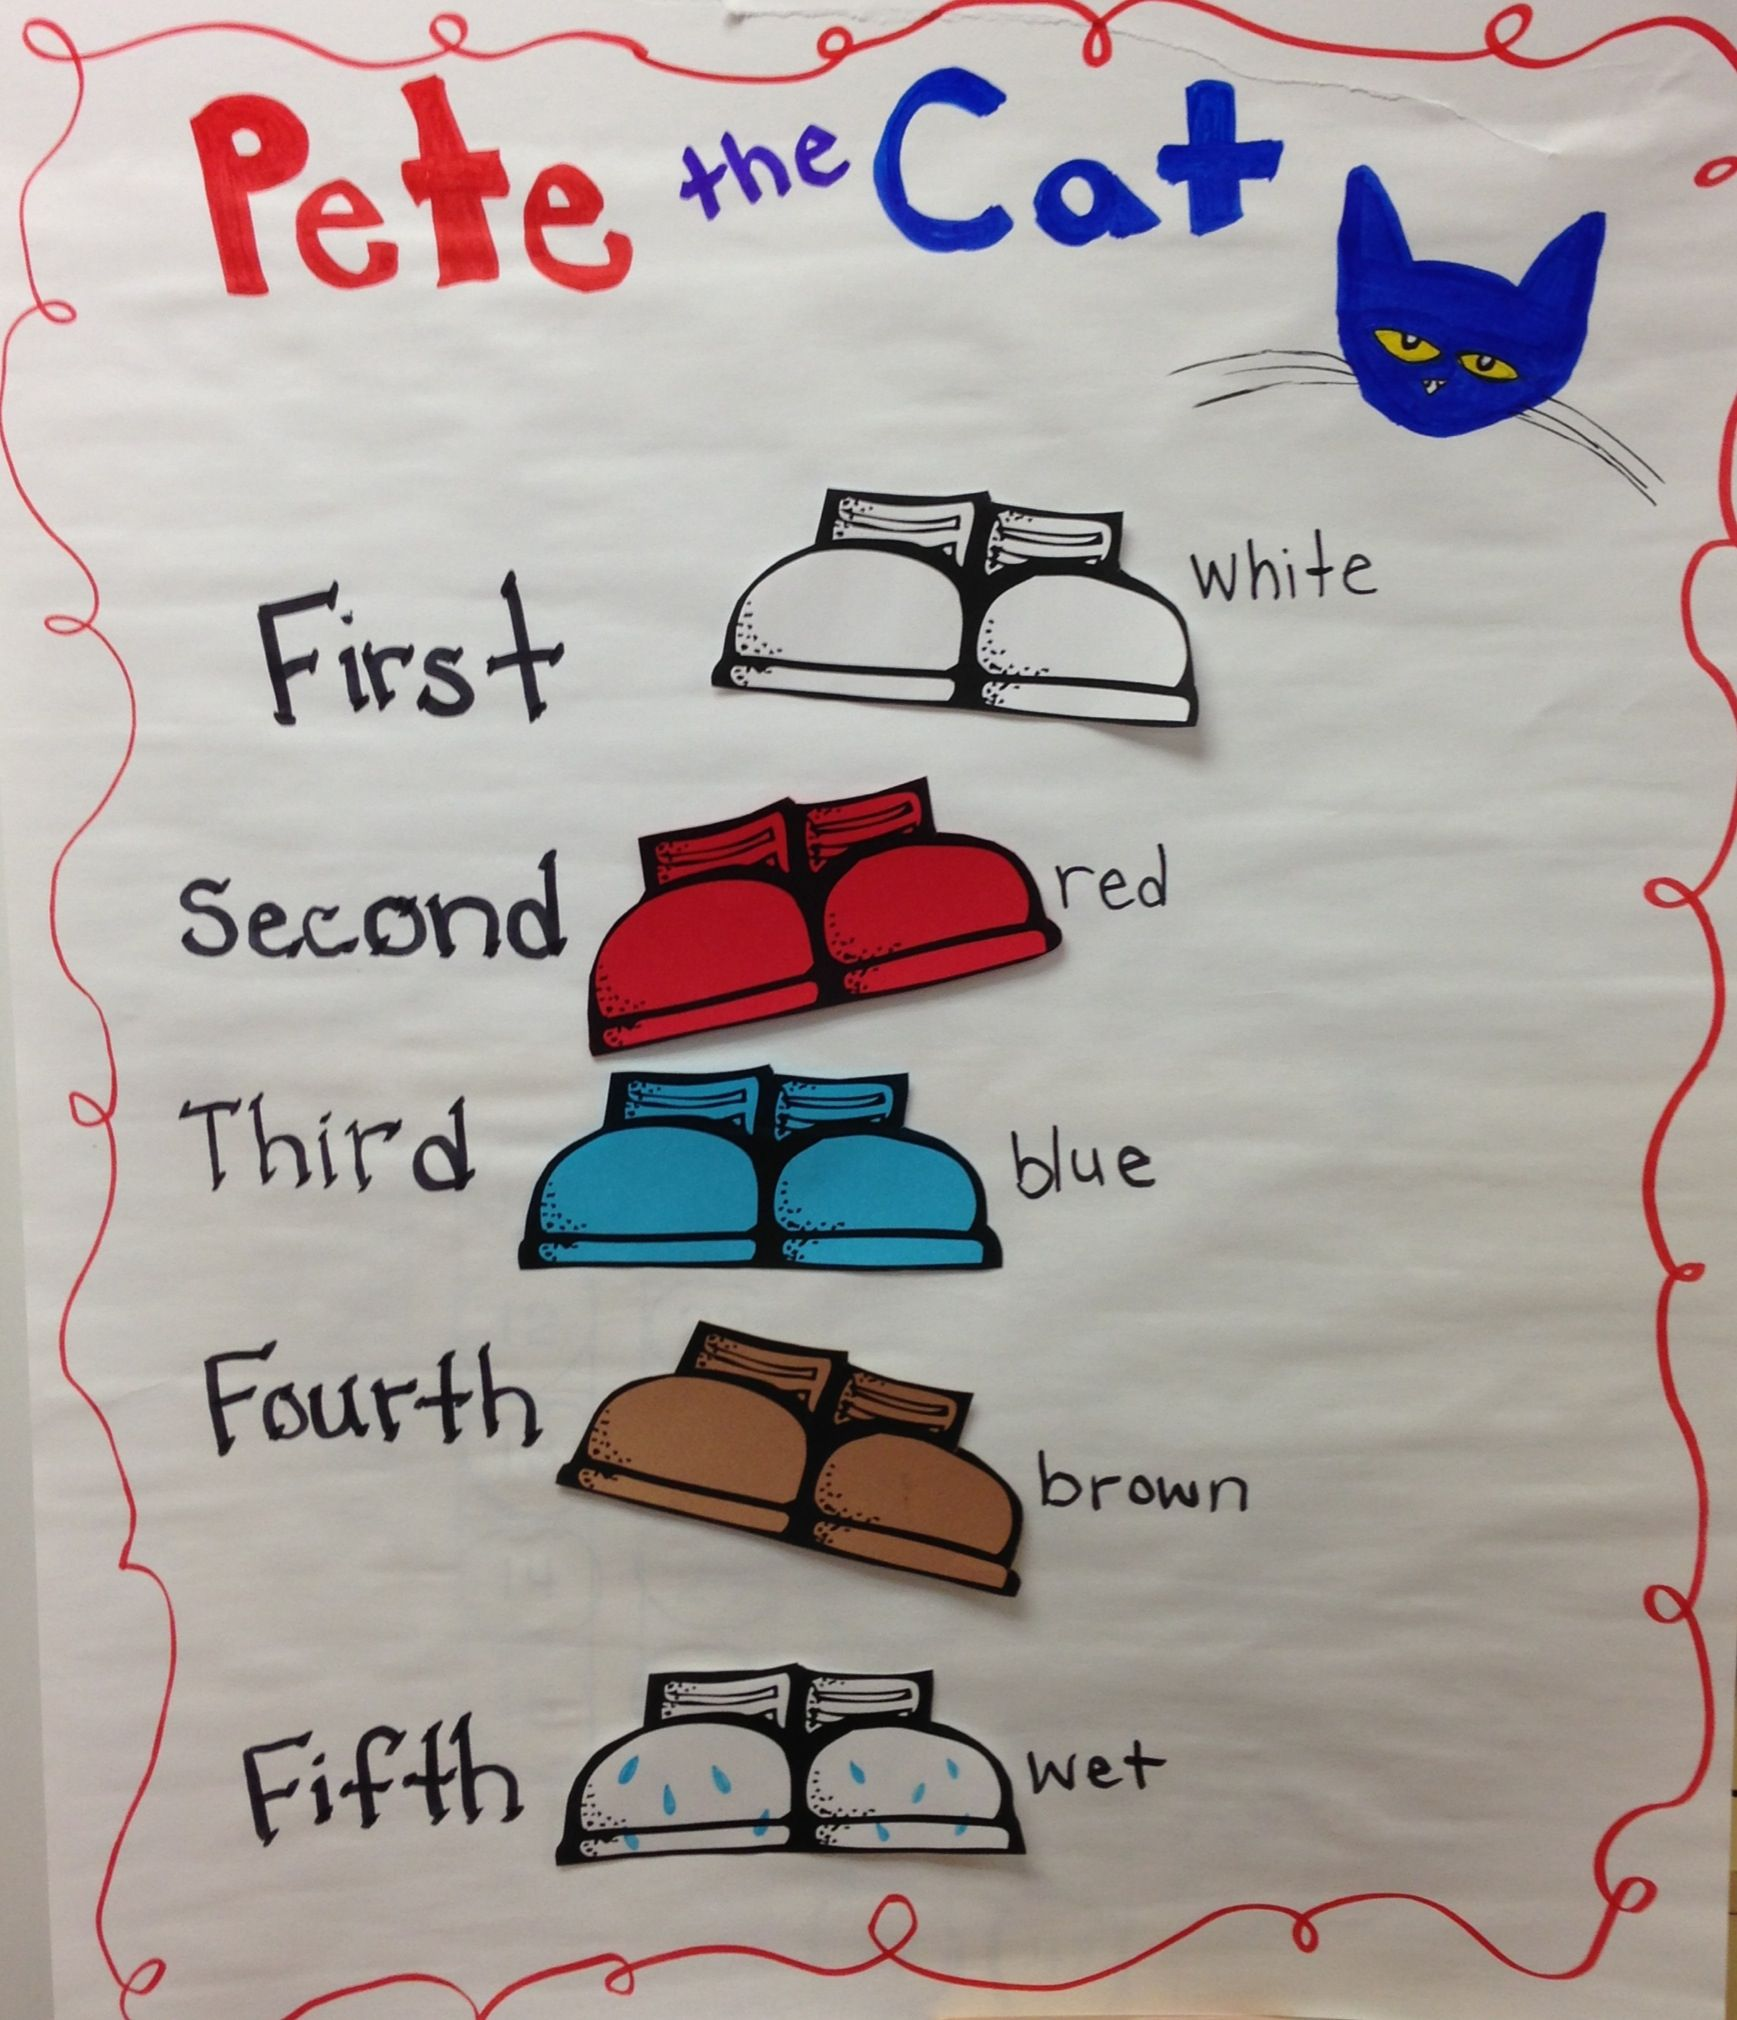 Pete the Cat Ordinal Numbers or I am going to use it to